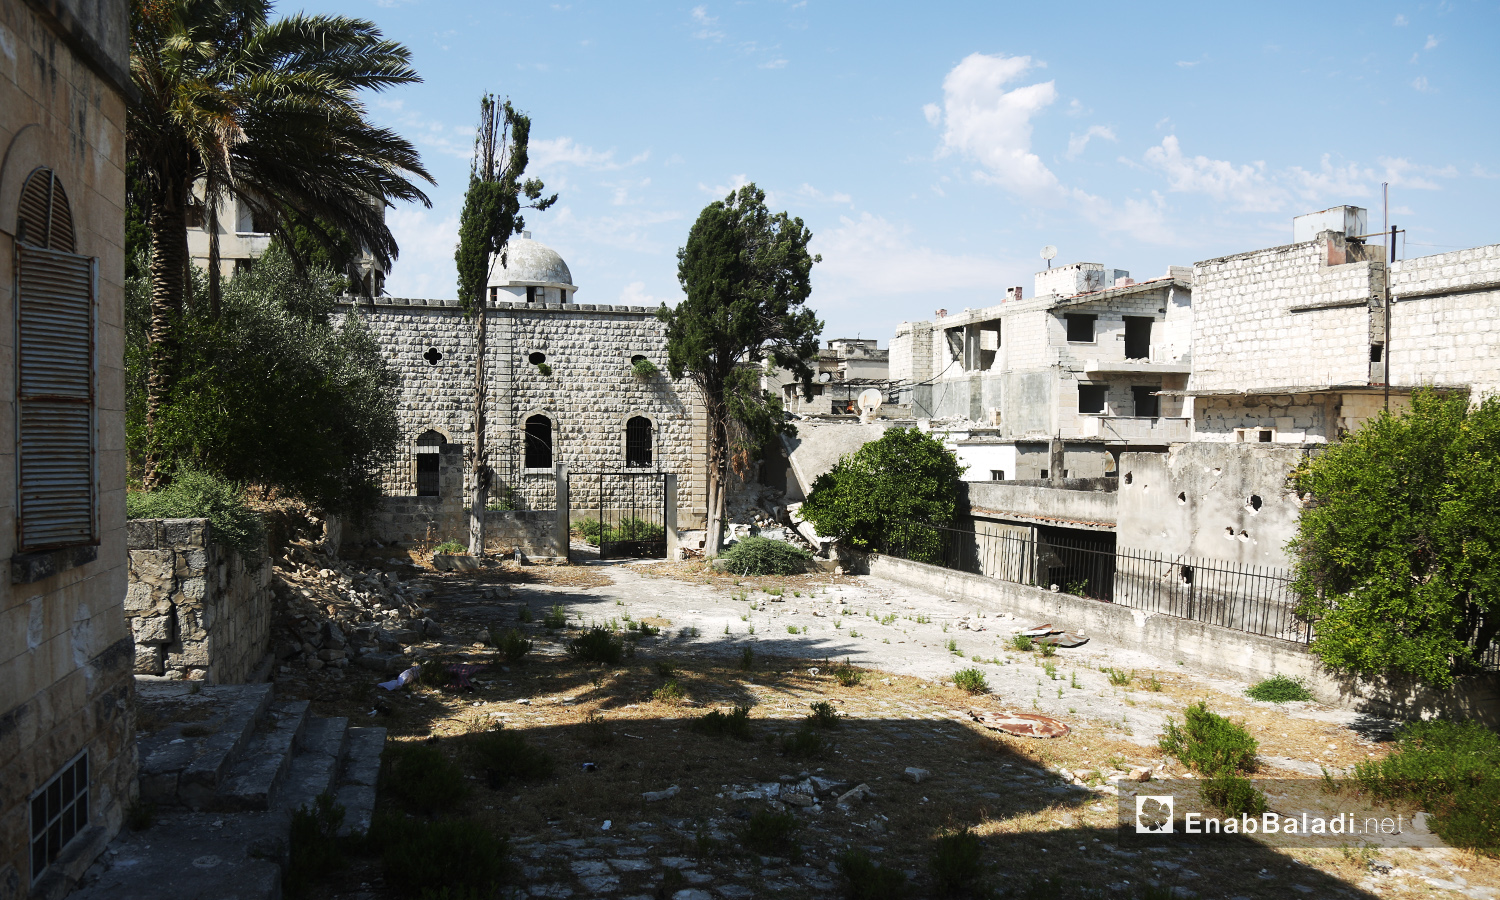 """Mar Georges"" Church for the Greek Orthodox in Jisr al-Shughur city in the Southern Idlib countryside still has its structure despite being bombed during the war years in Syria – July 2020 (Enab Baladi)"